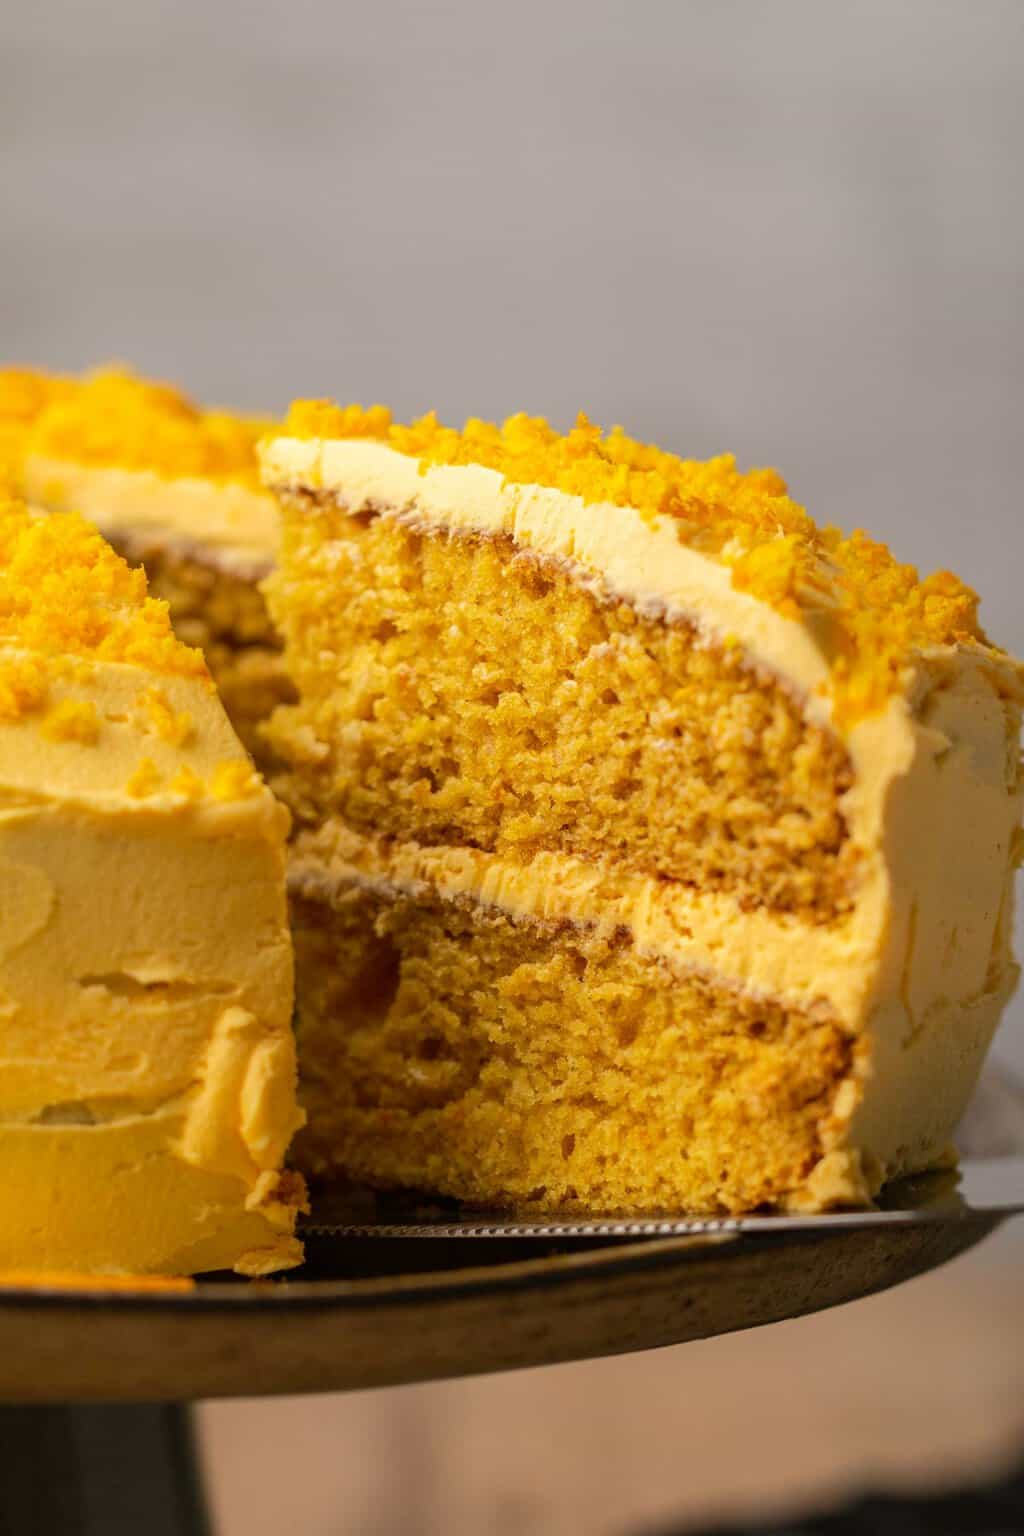 Sliced vegan orange cake with a cake lifter.